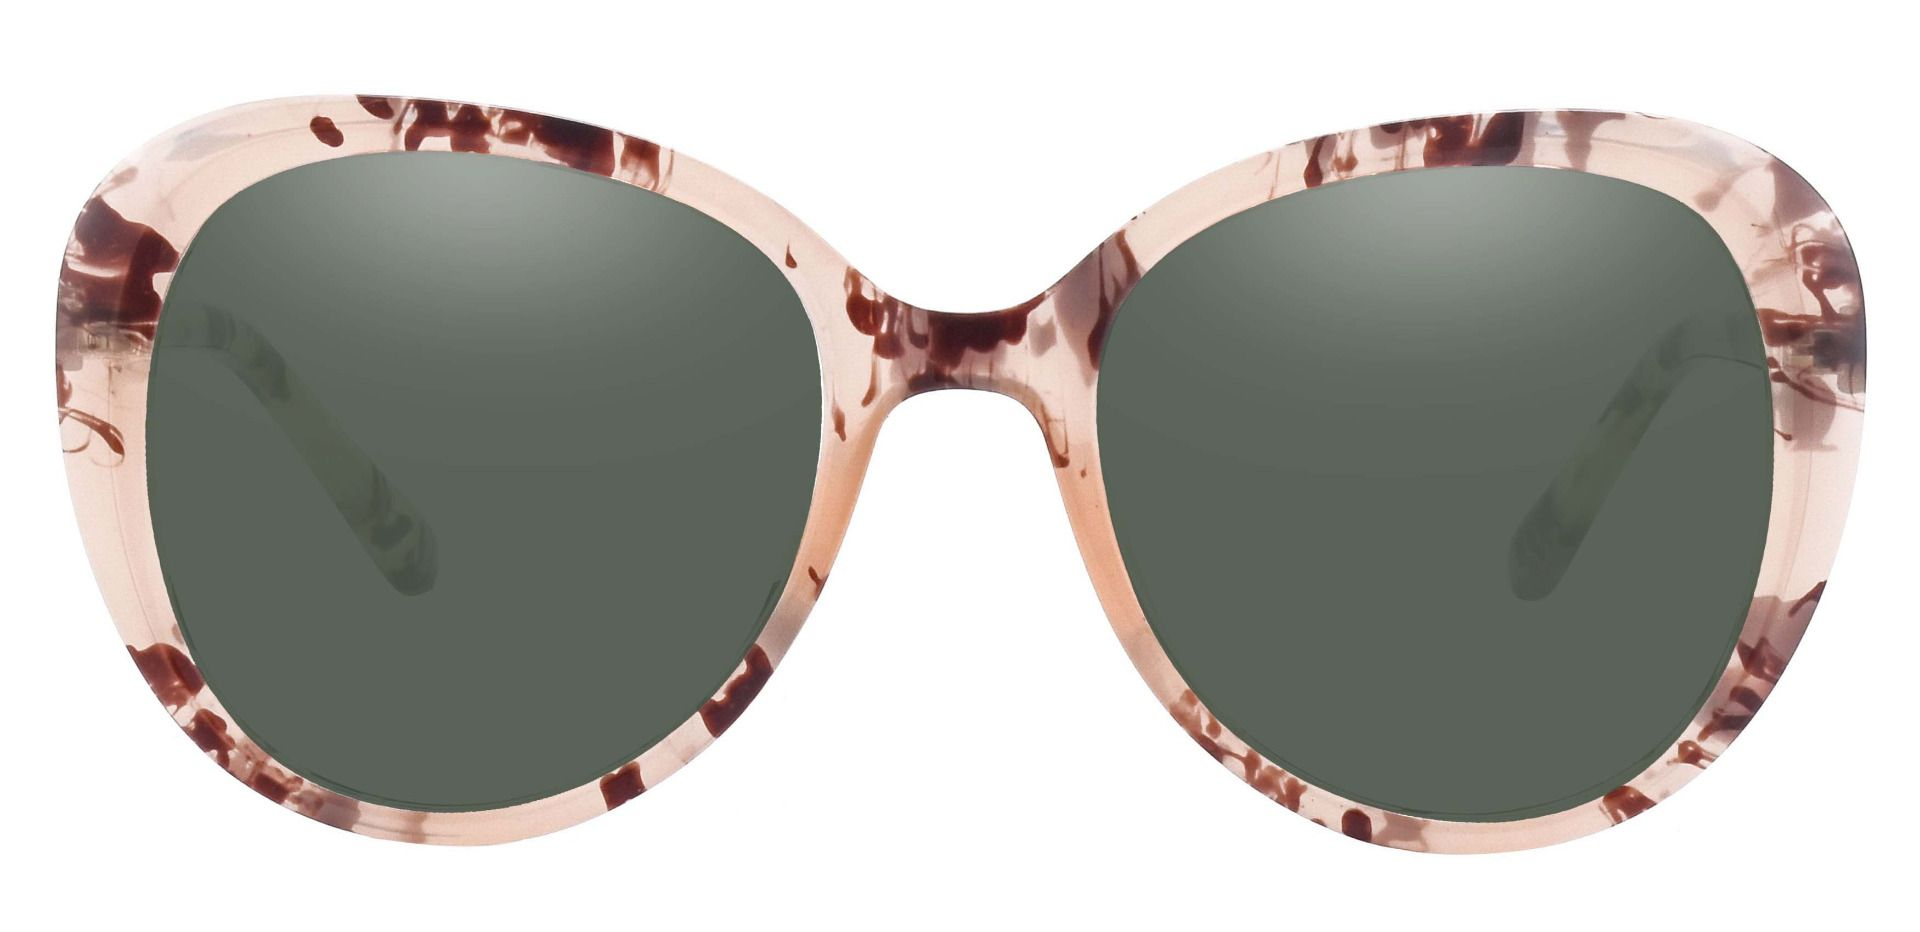 Sheridan Oval Reading Sunglasses - Floral Frame With Green Lenses